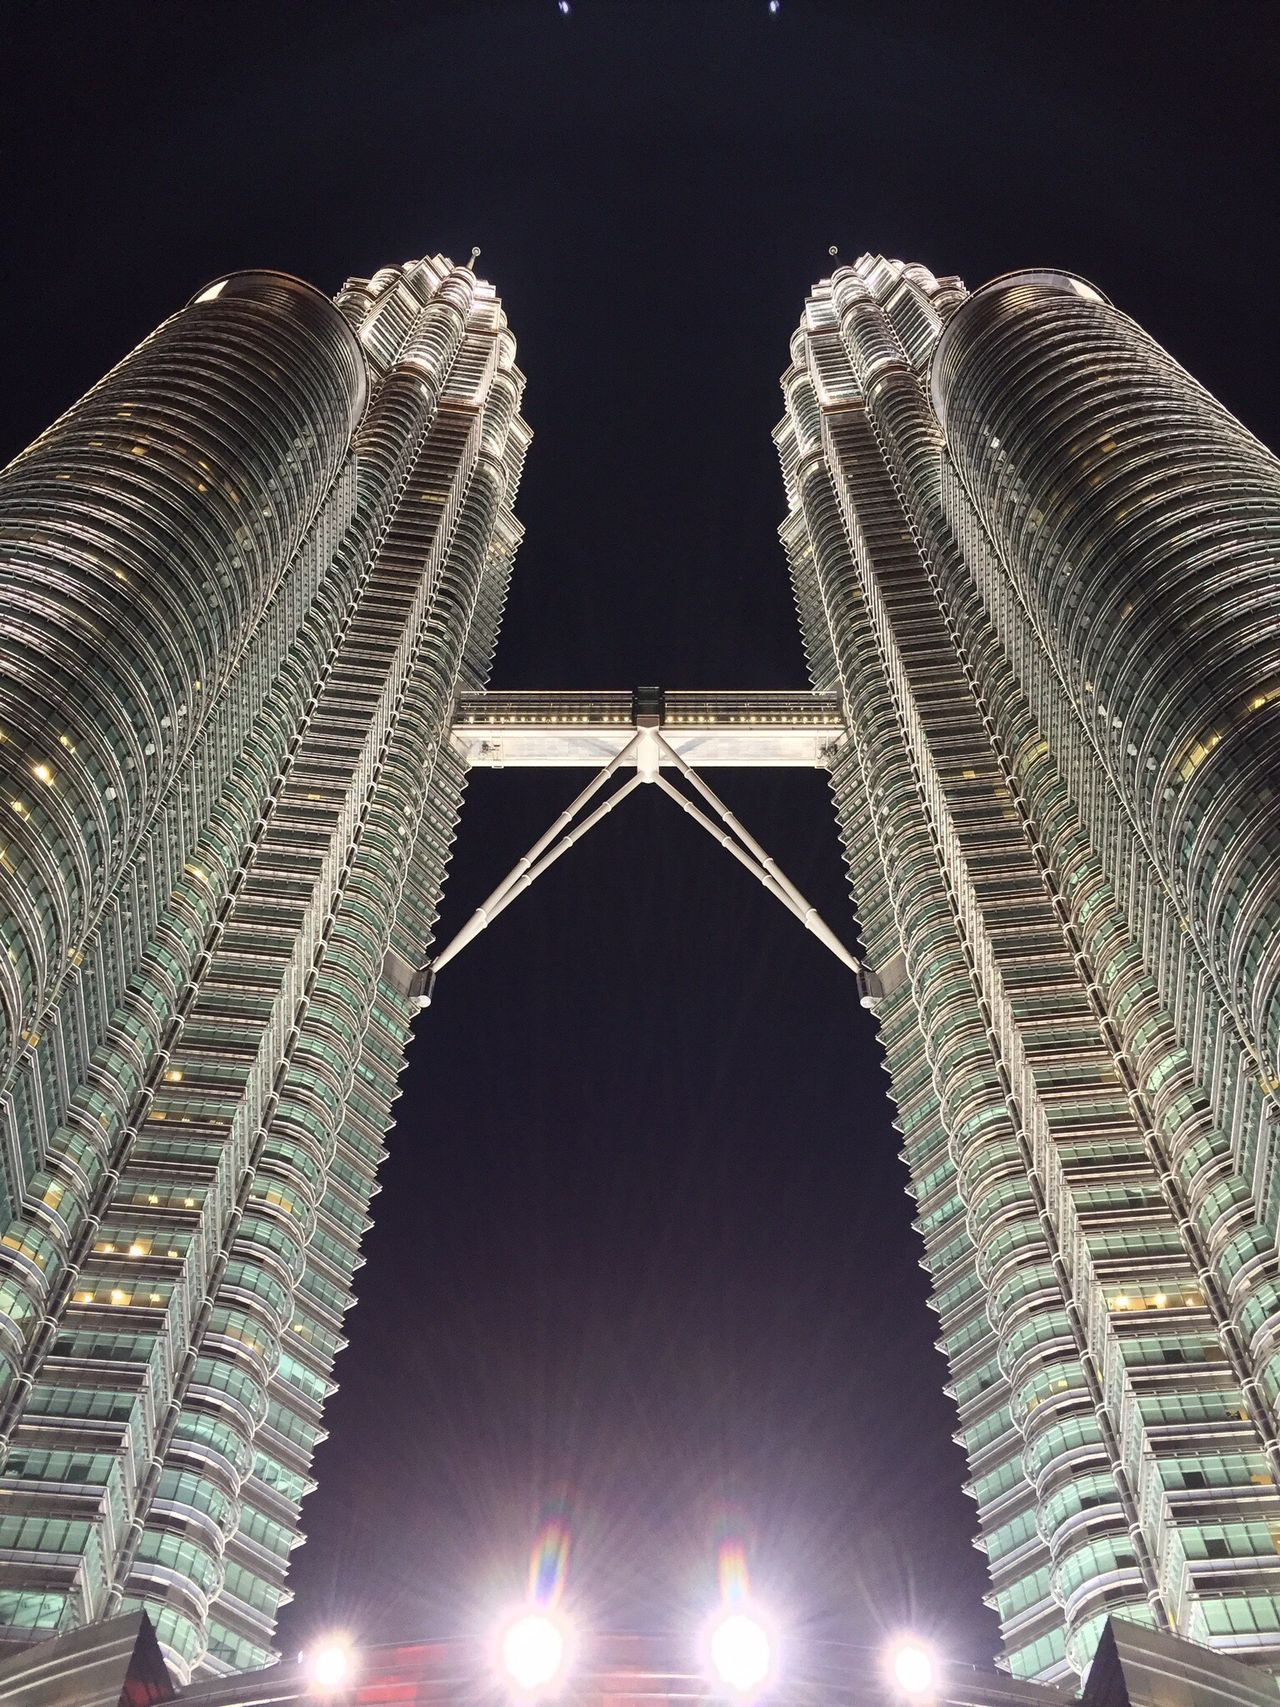 Petronas Twin Tower Kl Kuala Lumpur Klcc Kltwintower Tall Malaysia Beautiful Building Steel Tower  Steel Magnificent Architecture Architecture_collection Architectural Feature Architectural Detail Love ♥ Love Lovely Hanging Out Taking Photos Enjoying Life Check This Out Light And Shadow Night Nightphotography